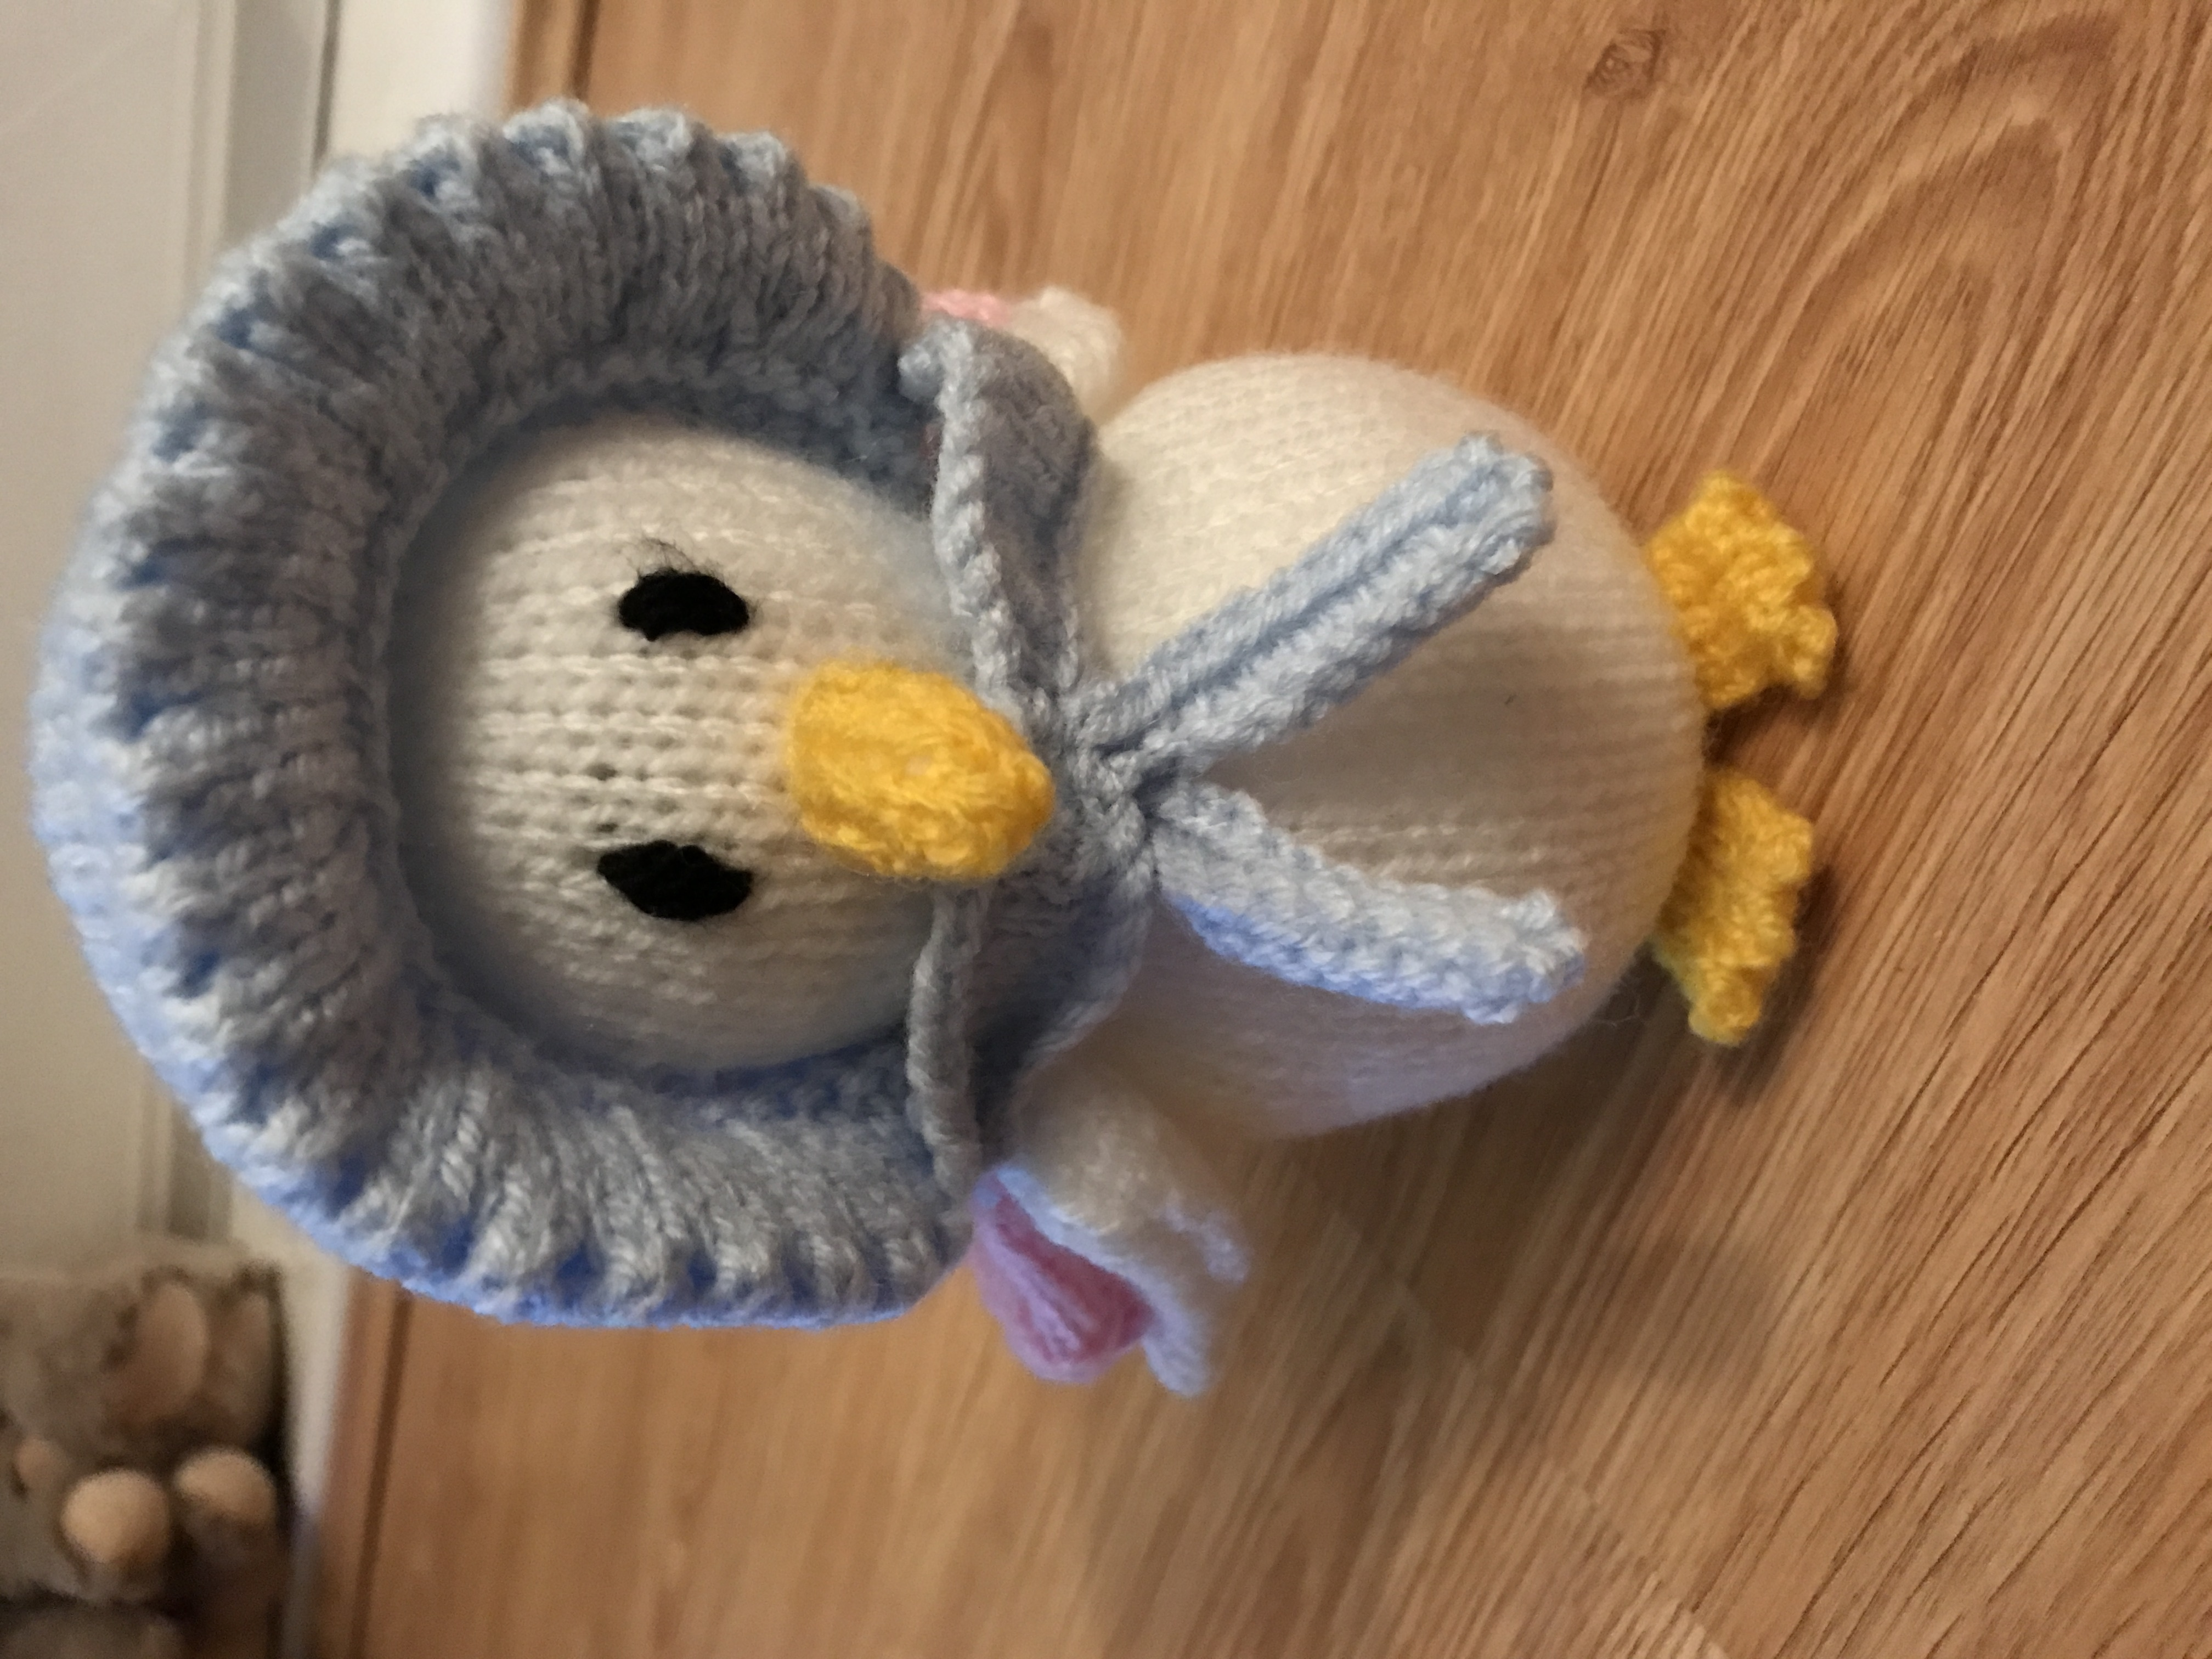 Jemima Puddle Duck knitting project by Luanne G LoveKnitting